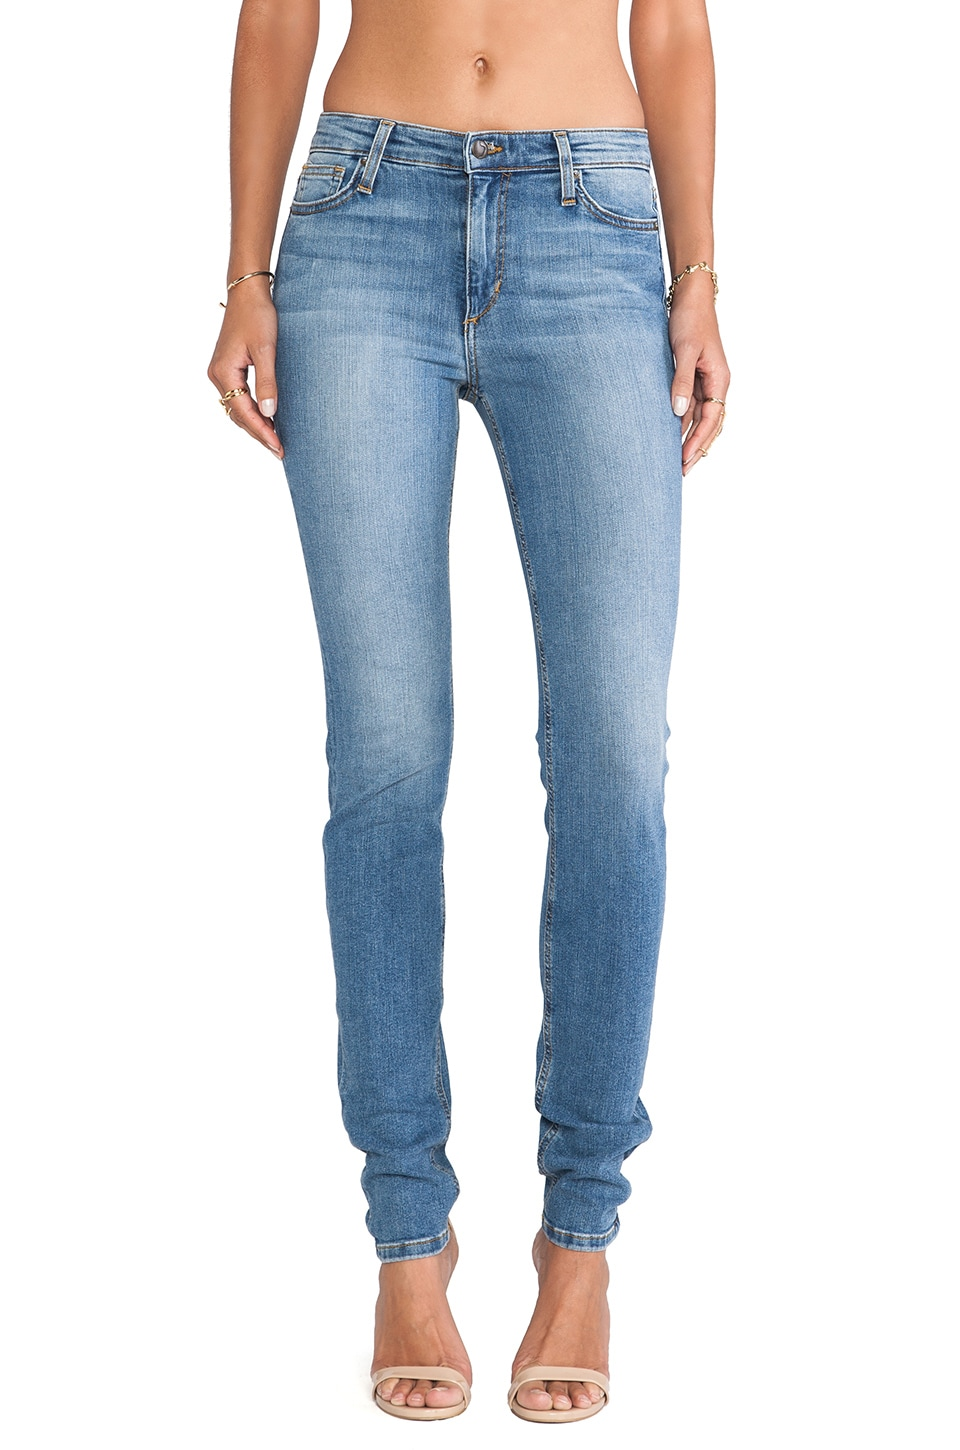 Joe's Jeans FLAWLESS High Rise Legging in Bernadette